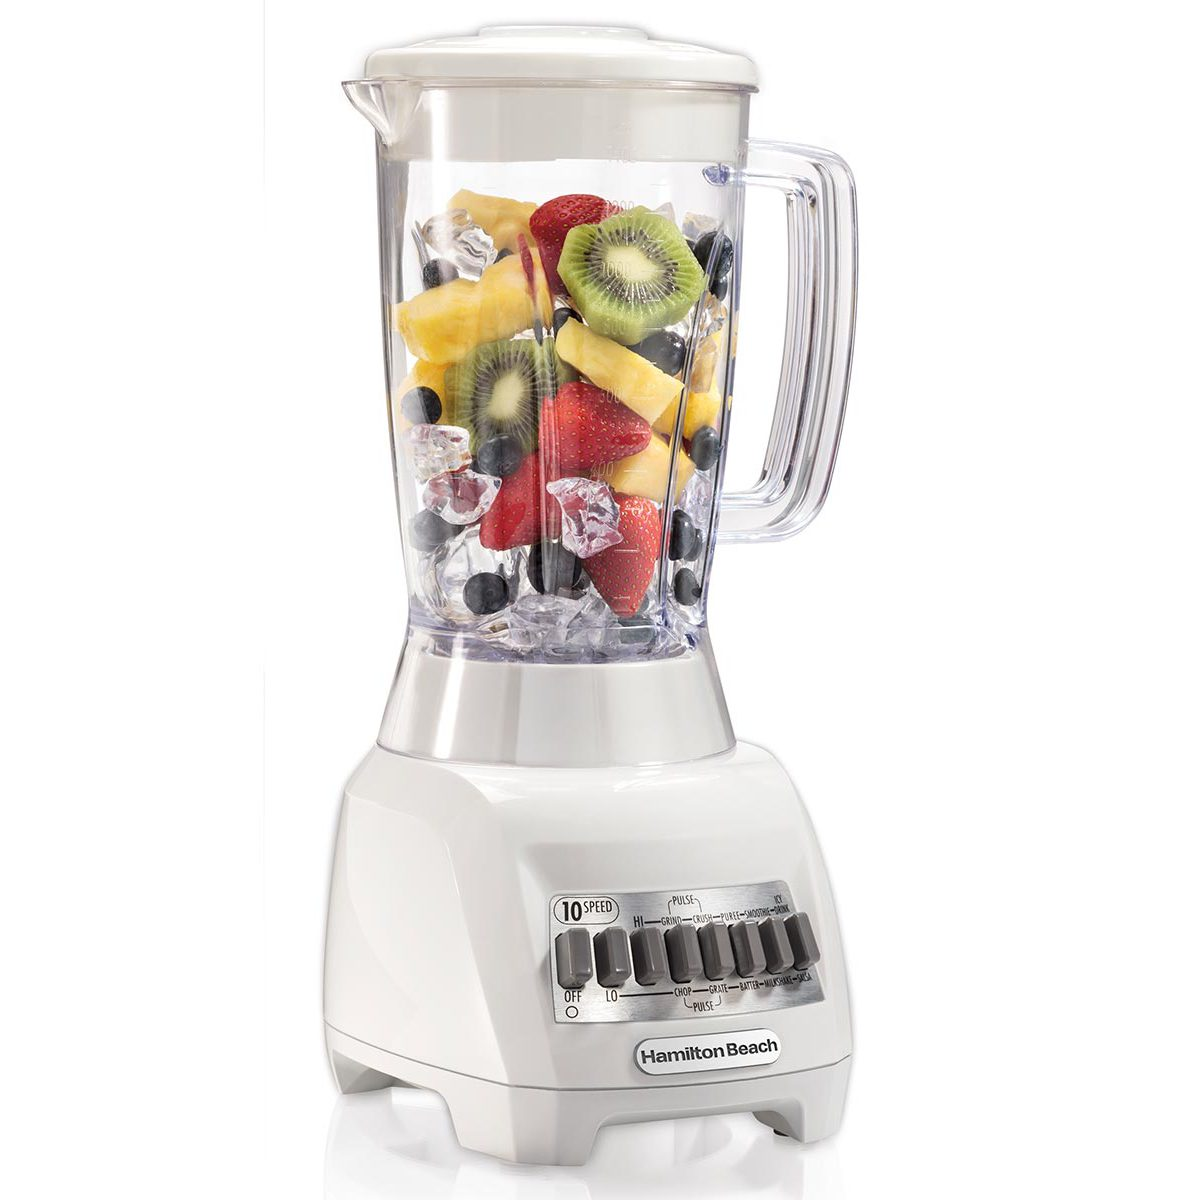 10 Speed Blender (50126)